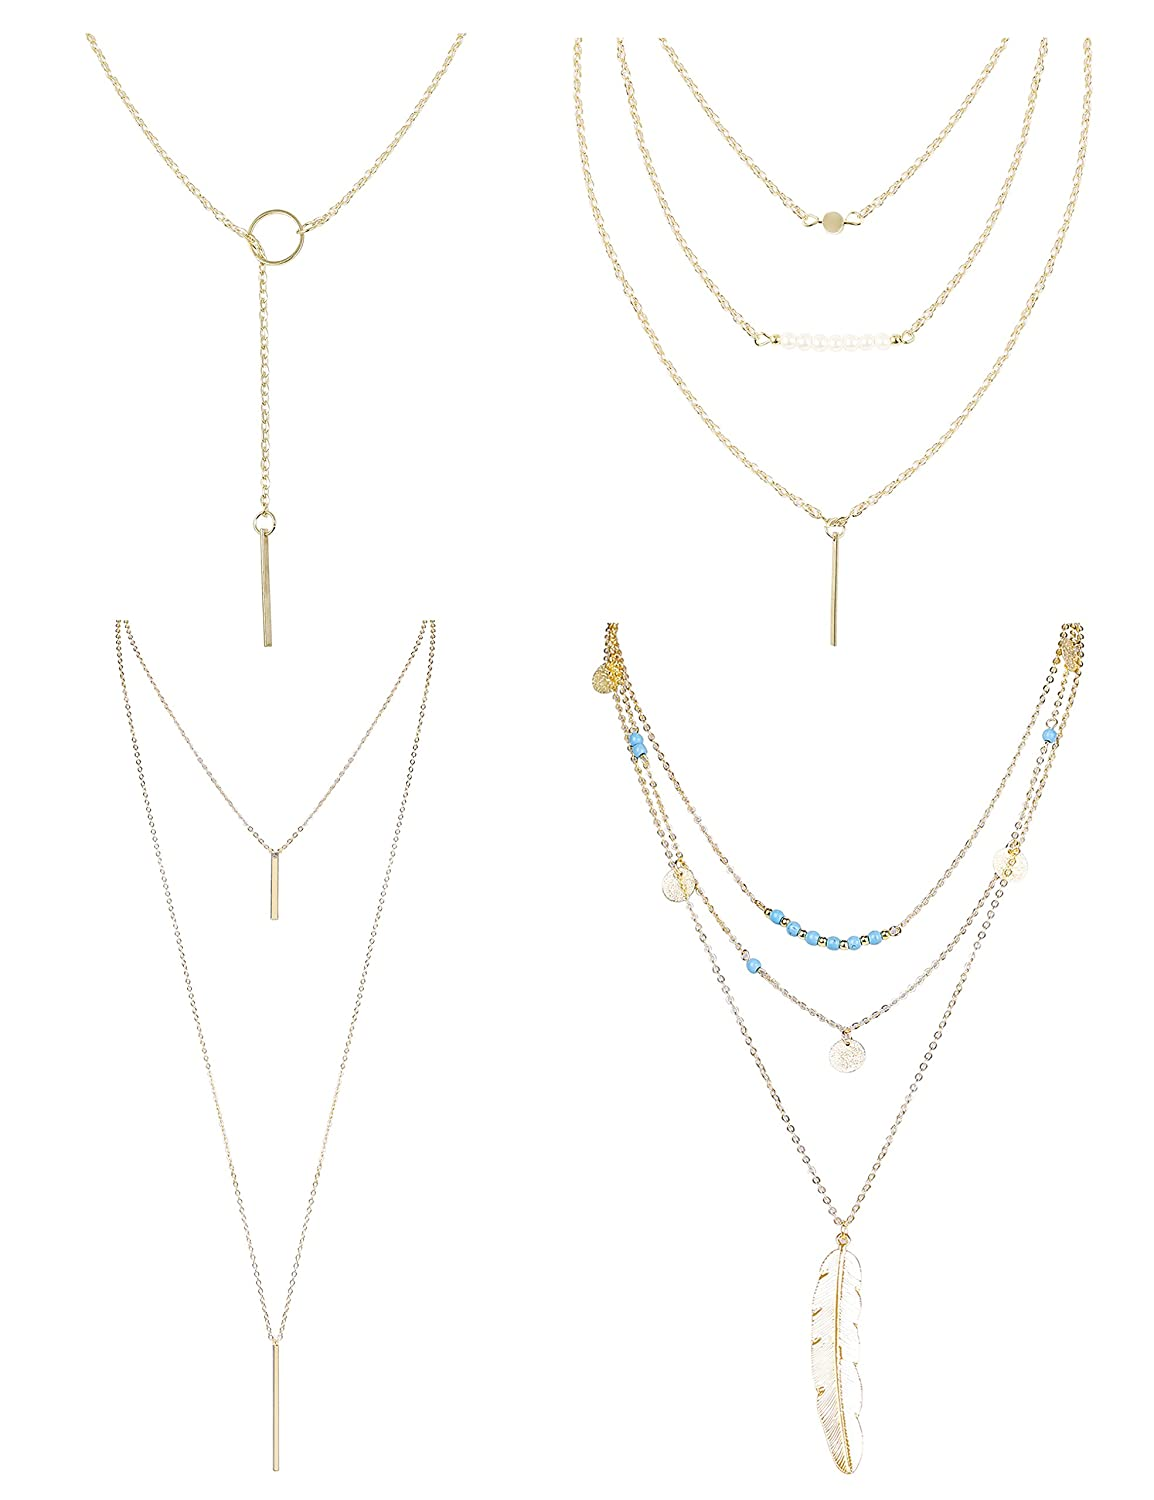 Amazon.com  Finrezio 4 PCS Layered Necklaces for Women Girls Long Lariat Y  Pendant Necklace Gold-tone Jewelry Set  Jewelry 5fb341516